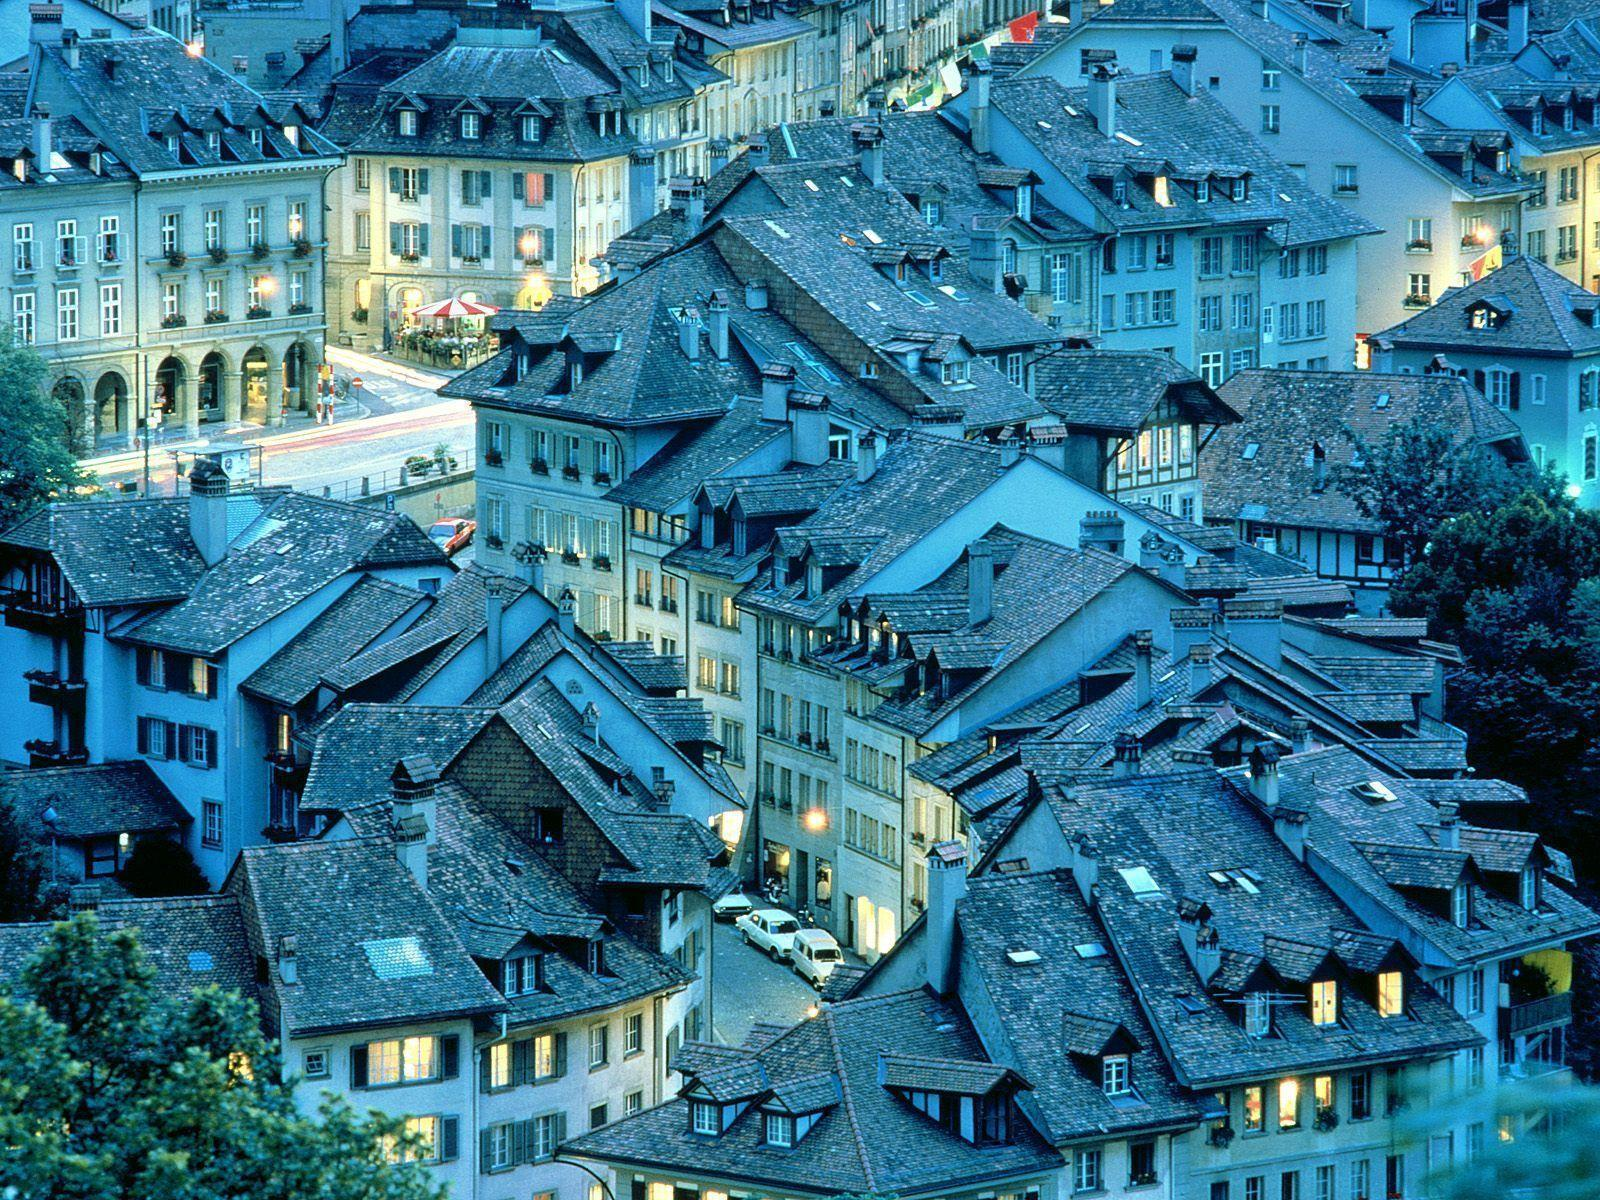 Swiss Switzerland Wallpaper - Wide Wallpapers